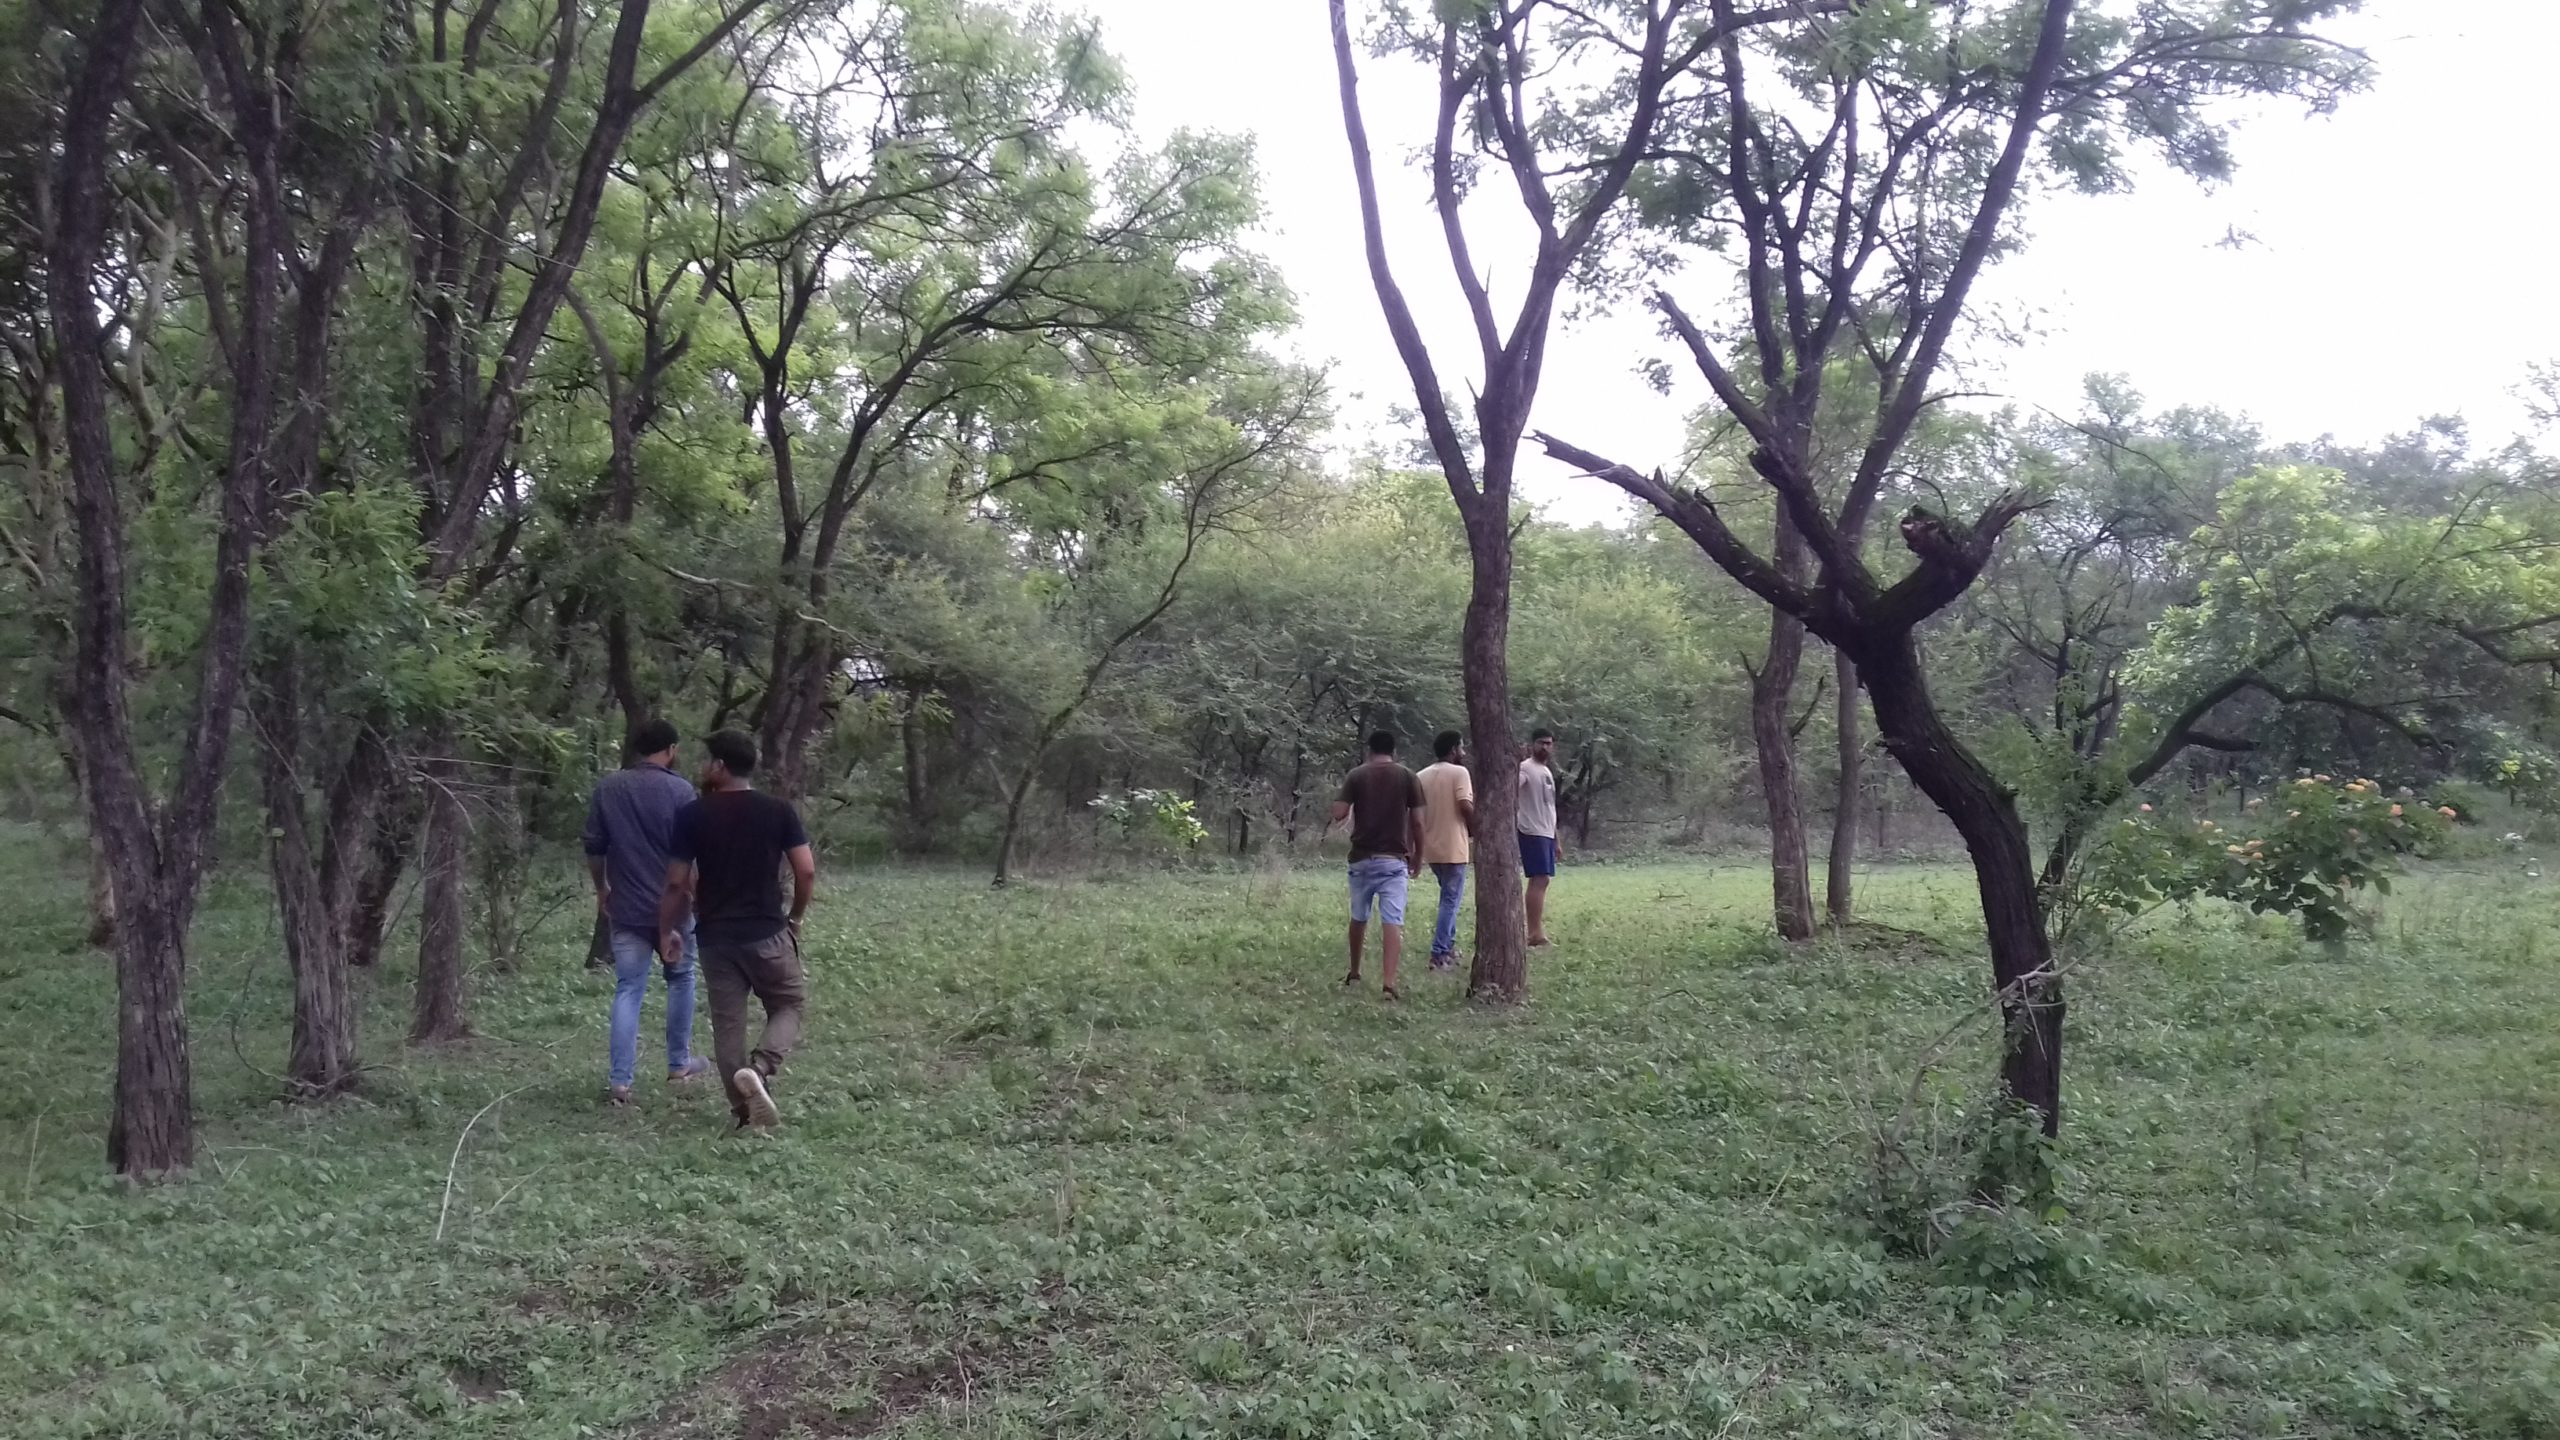 Participants take part in a baseline survey to assess the local biodiversity status. Photo by Abhishek Maitry.